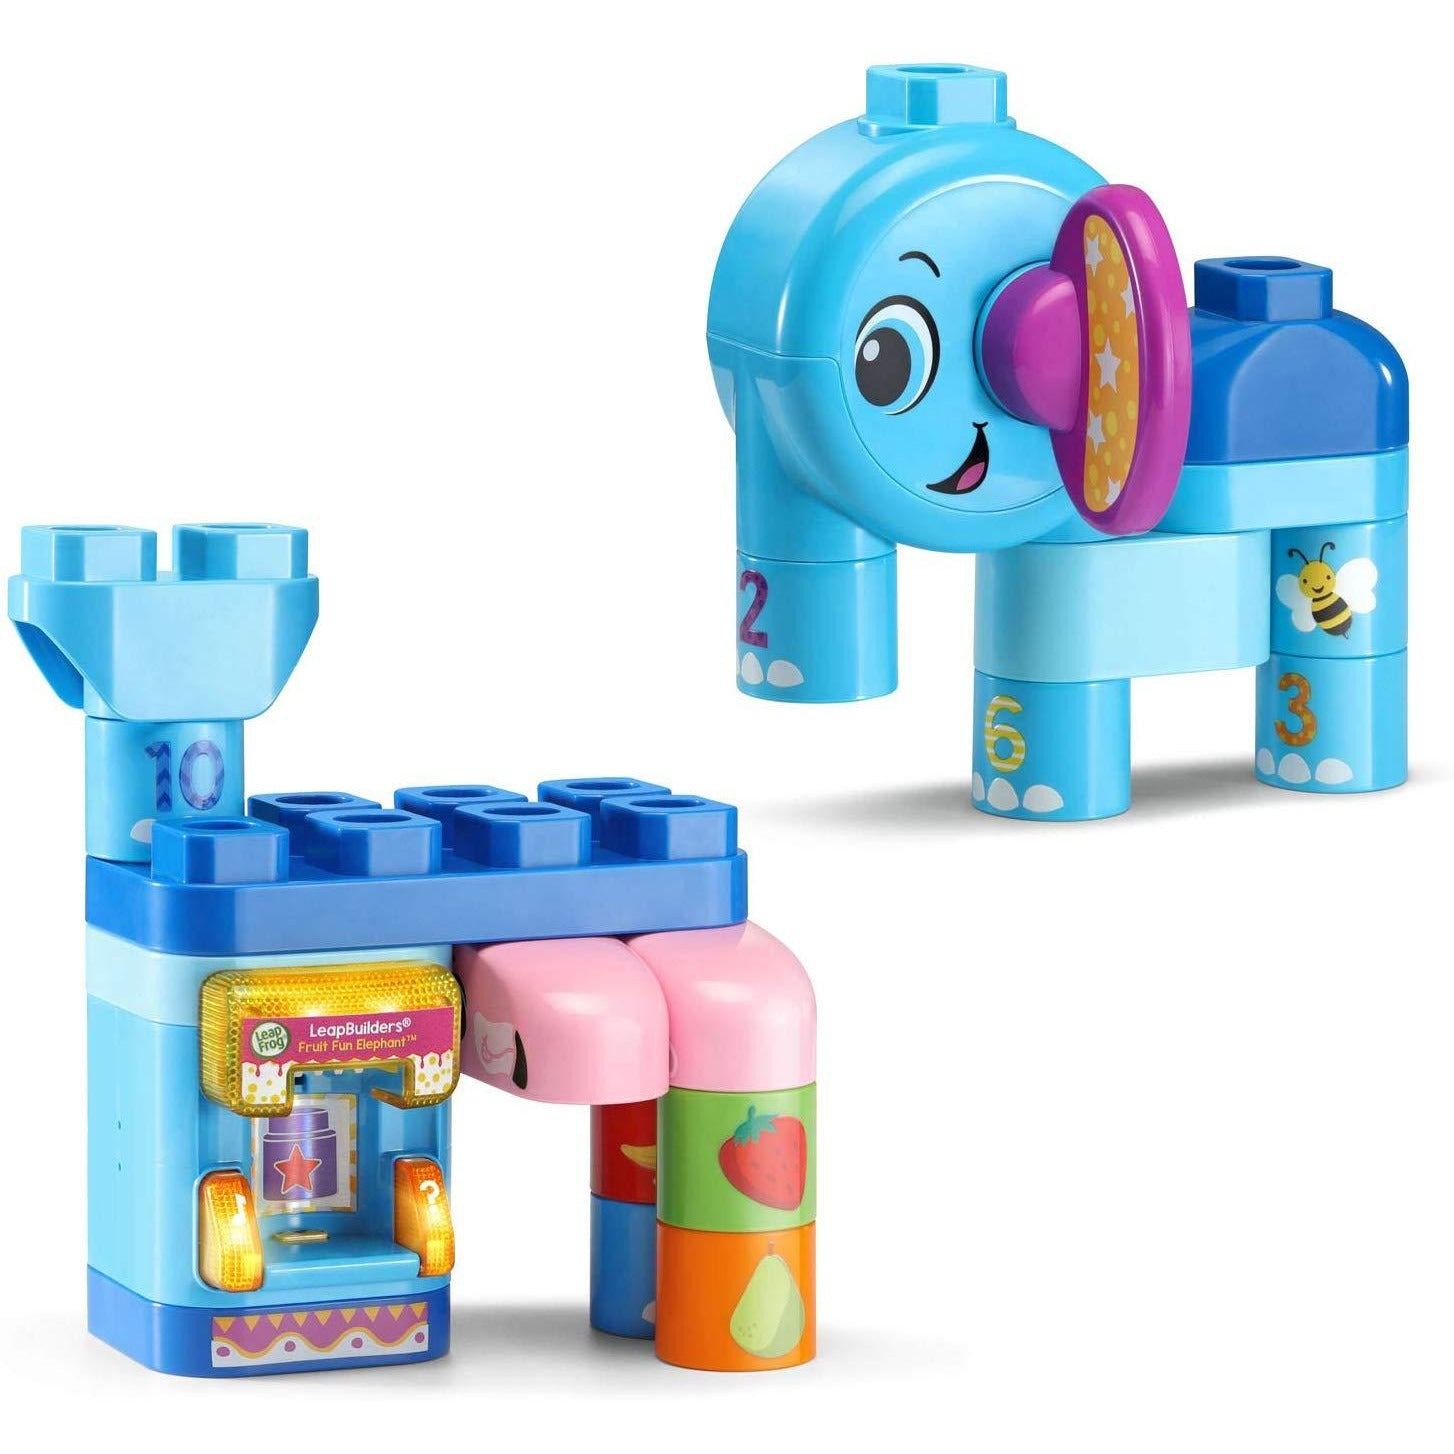 Leapbuilders Fruit Fun Elephant